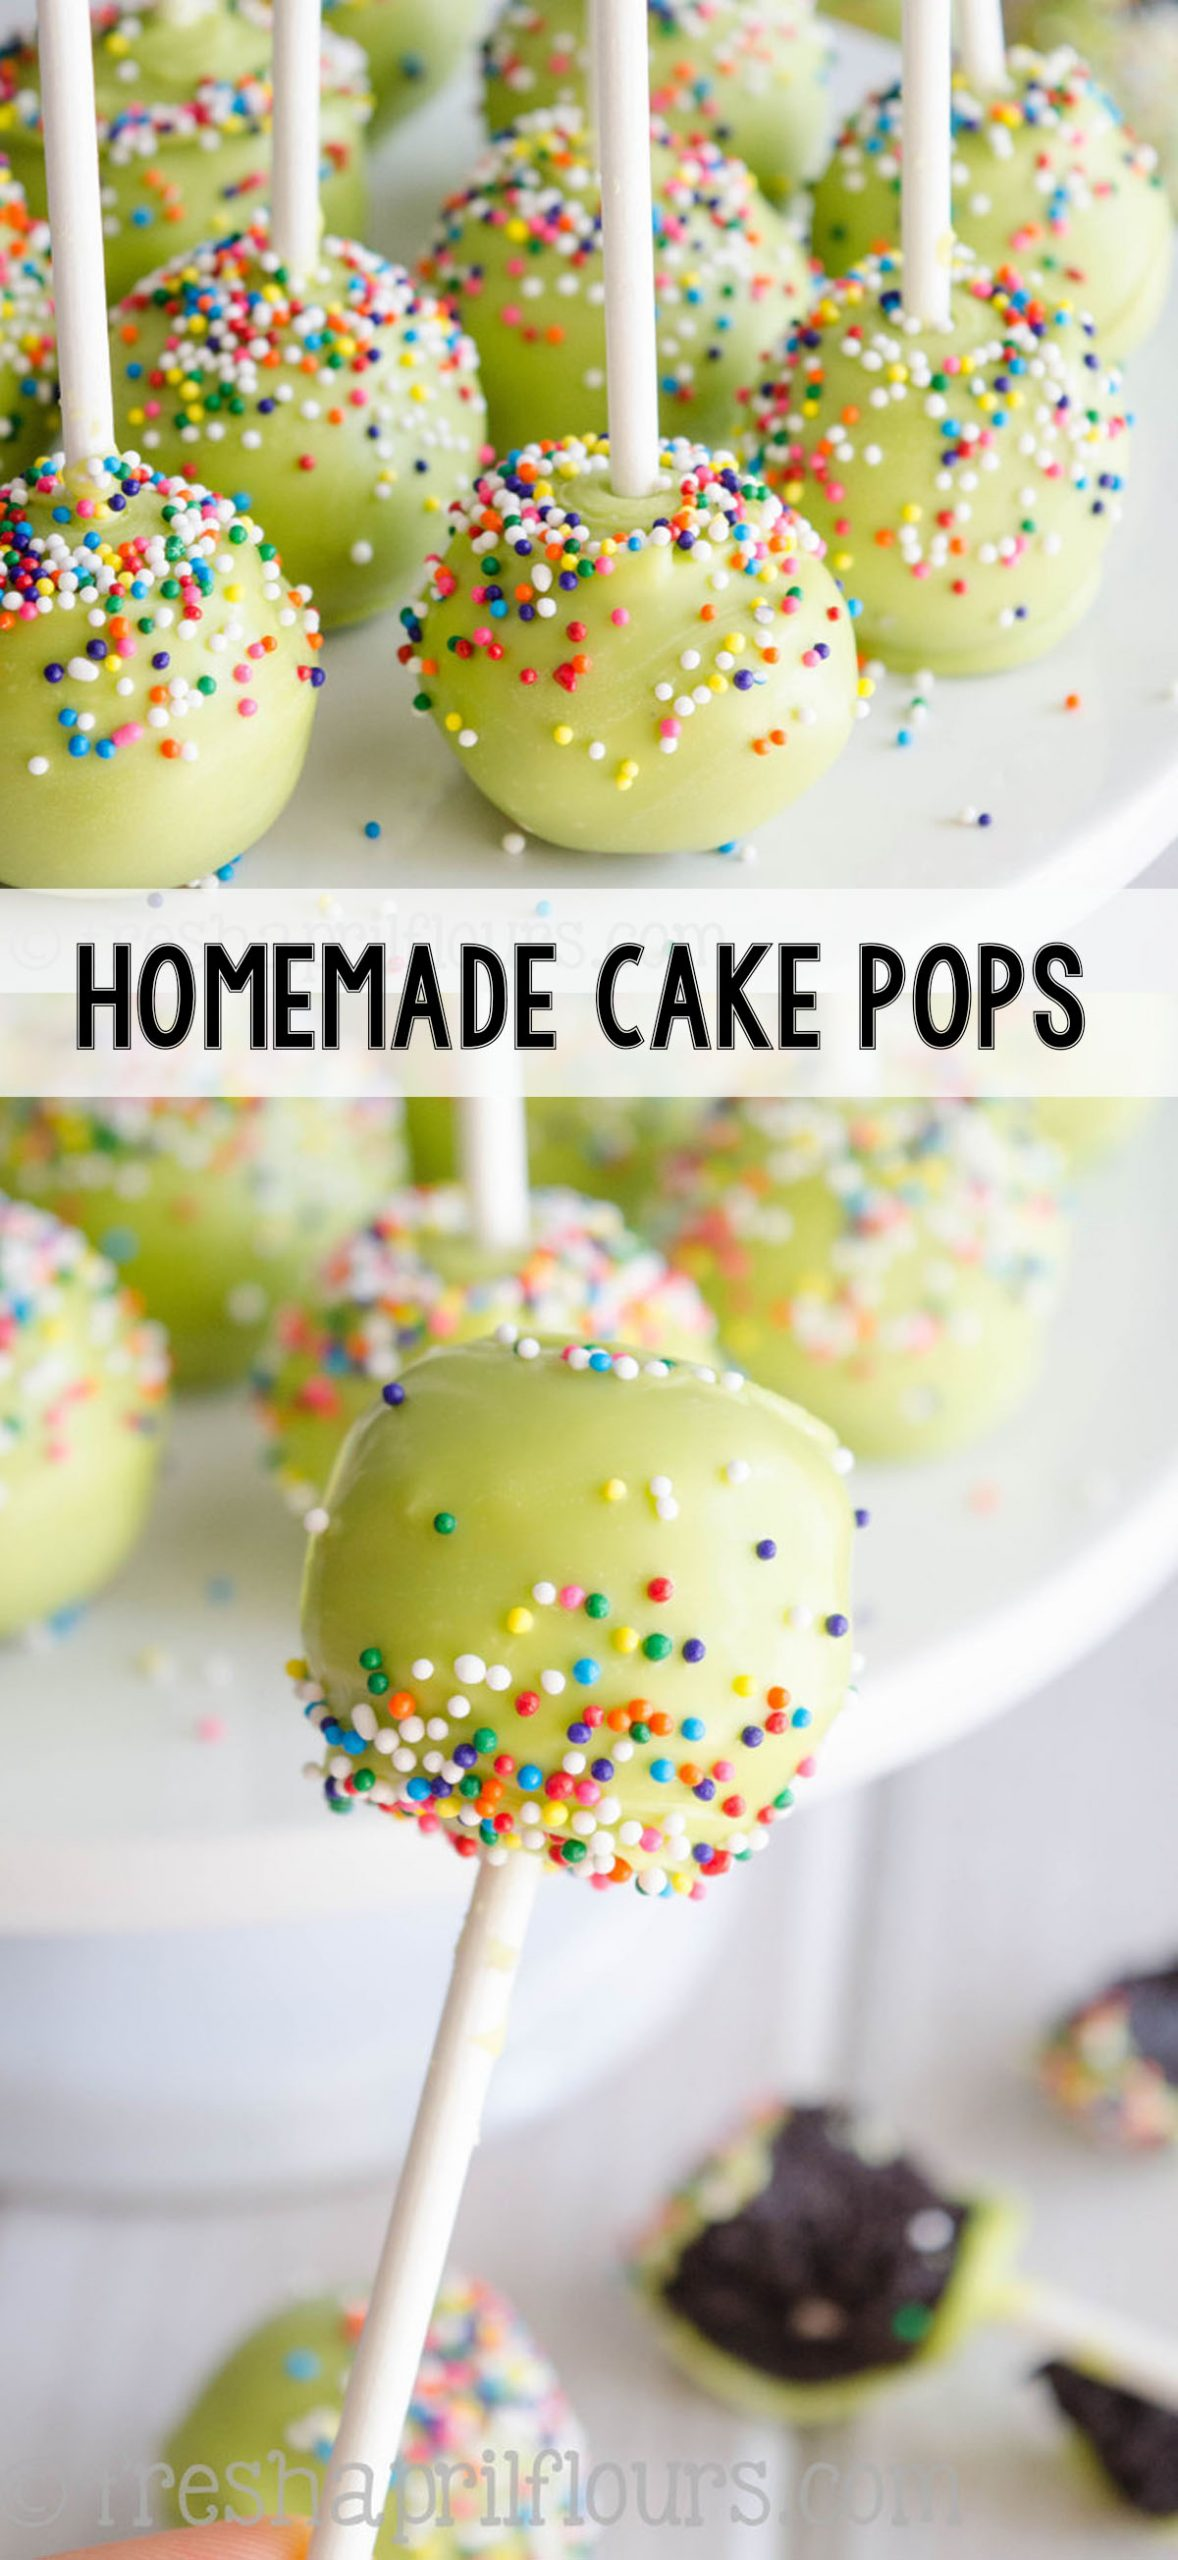 Learn how to make homemade cake pops with step-by-step instructions, tricks, and troubleshooting tips.